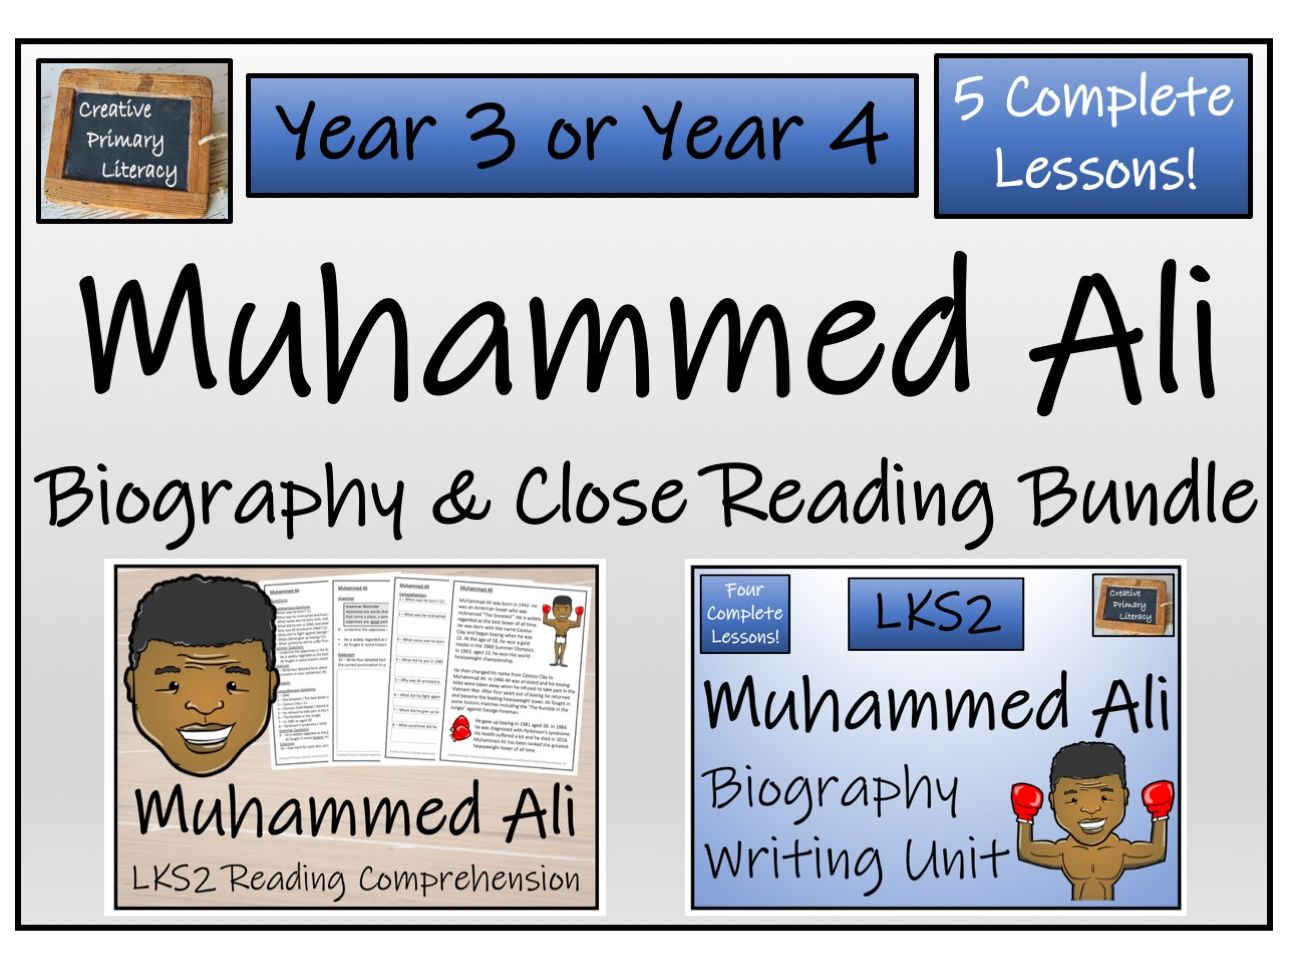 LKS2 - Muhammed Ali Reading Comprehension & Biography Bundle